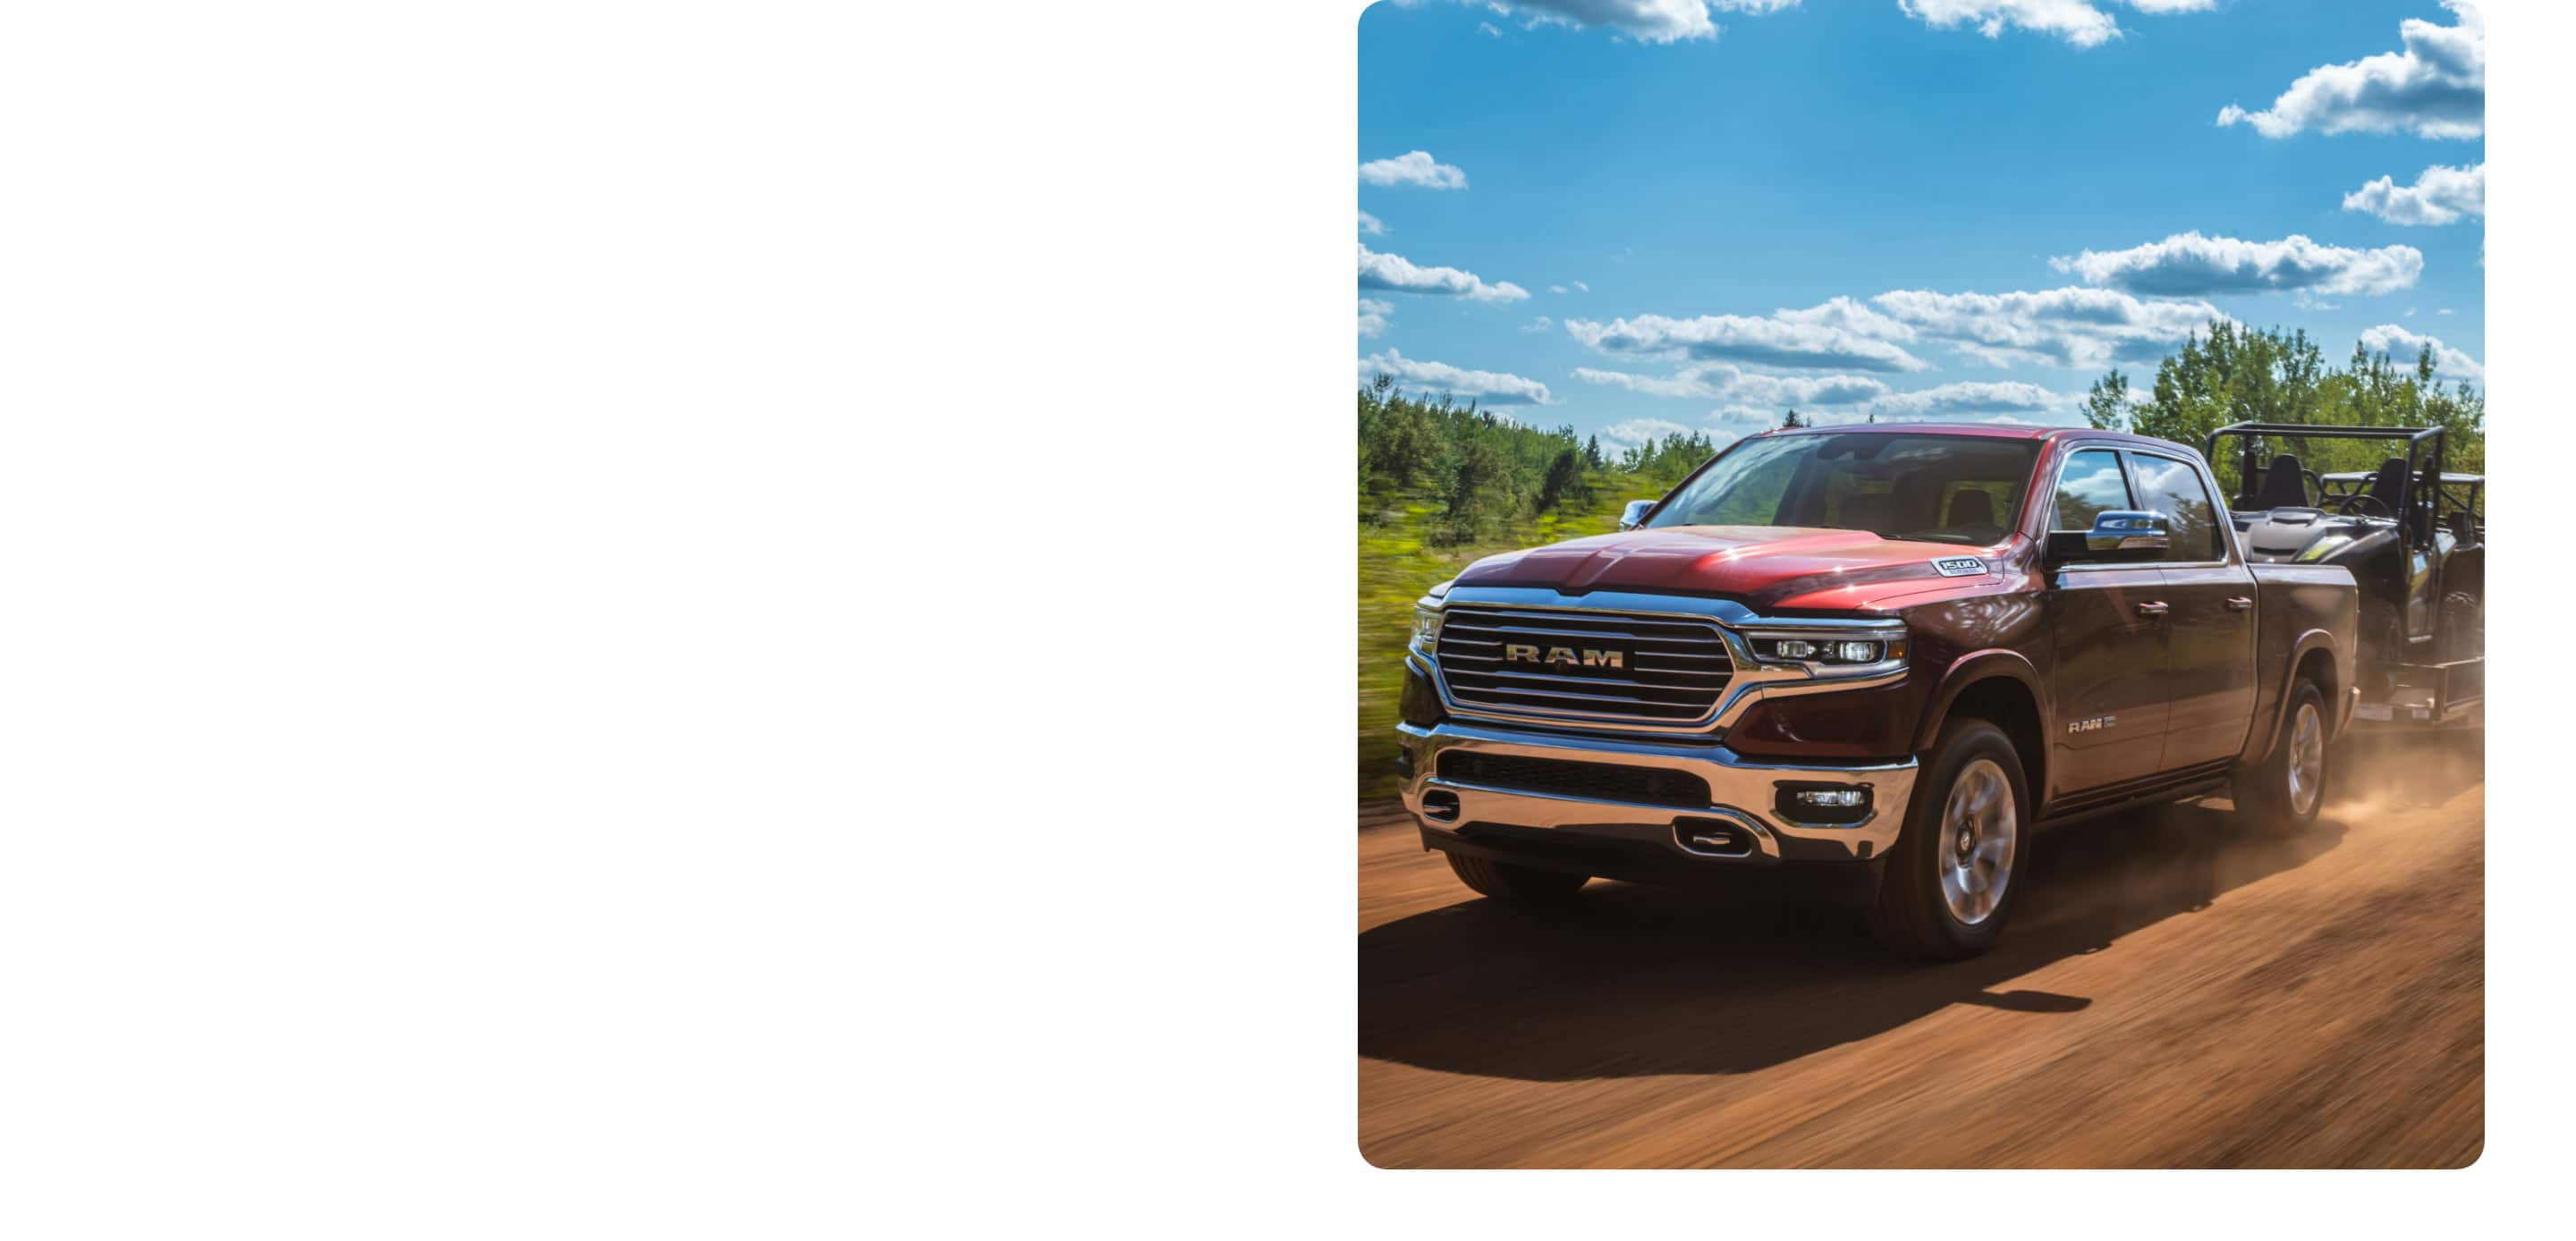 The 2021 Ram 1500 towing farm equipment on a dirt road.